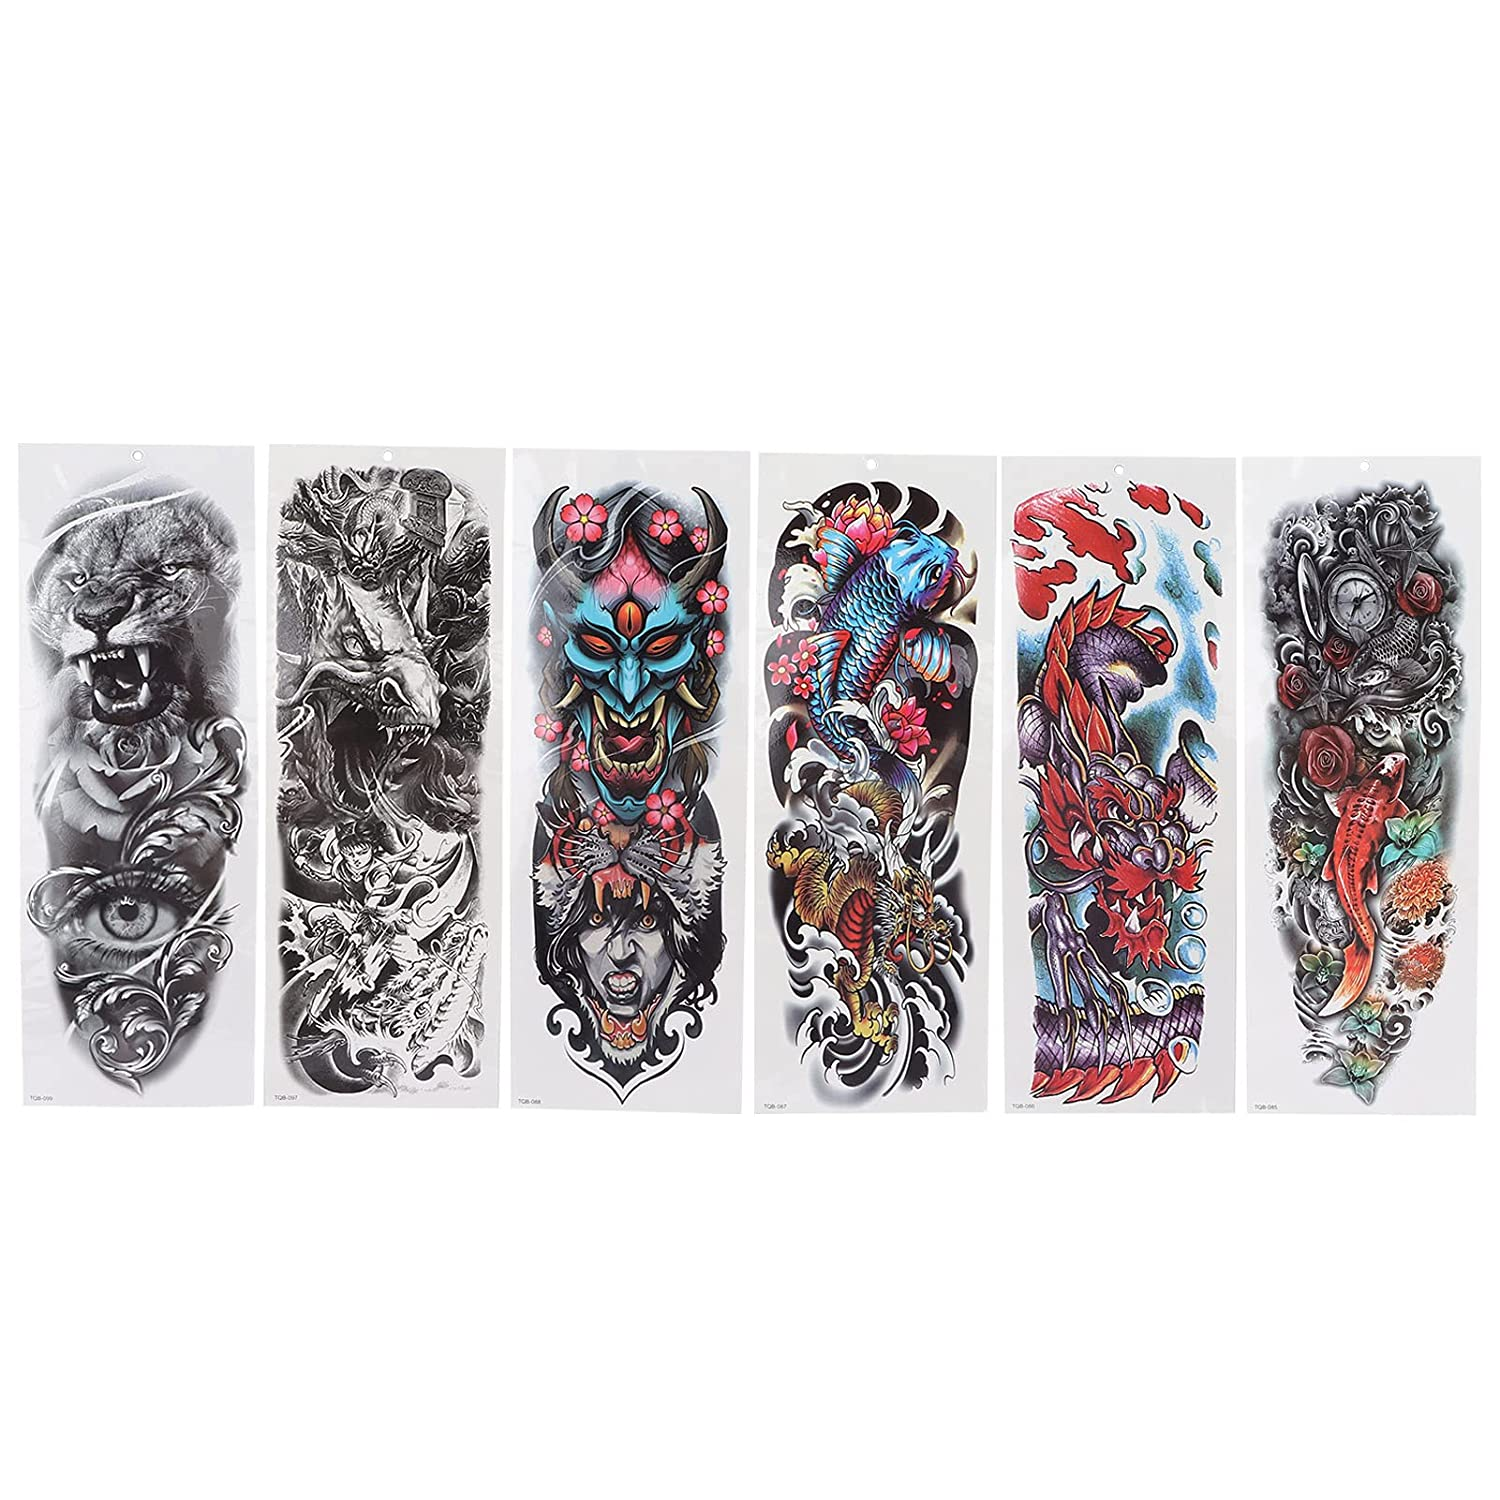 Ranking TOP10 All stores are sold 6pcs Set Personalized Tattoo Sticker Full T Sleeve Long Lasting